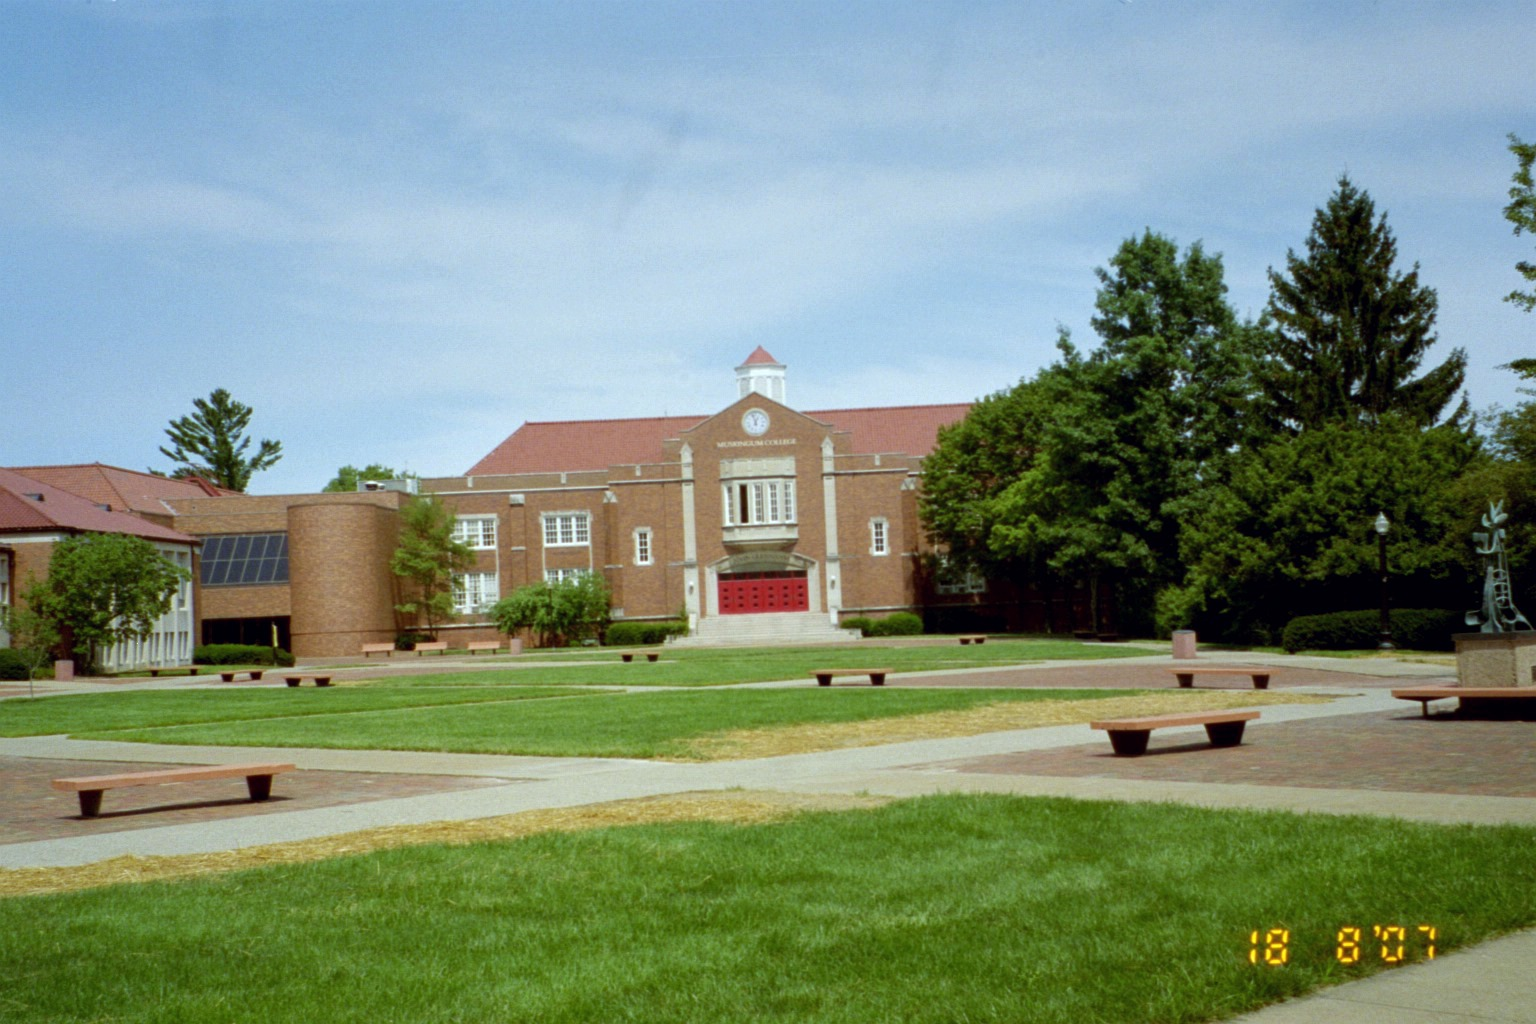 File:MuskingumQuad.jpg - Wikipedia, the free encyclopedia